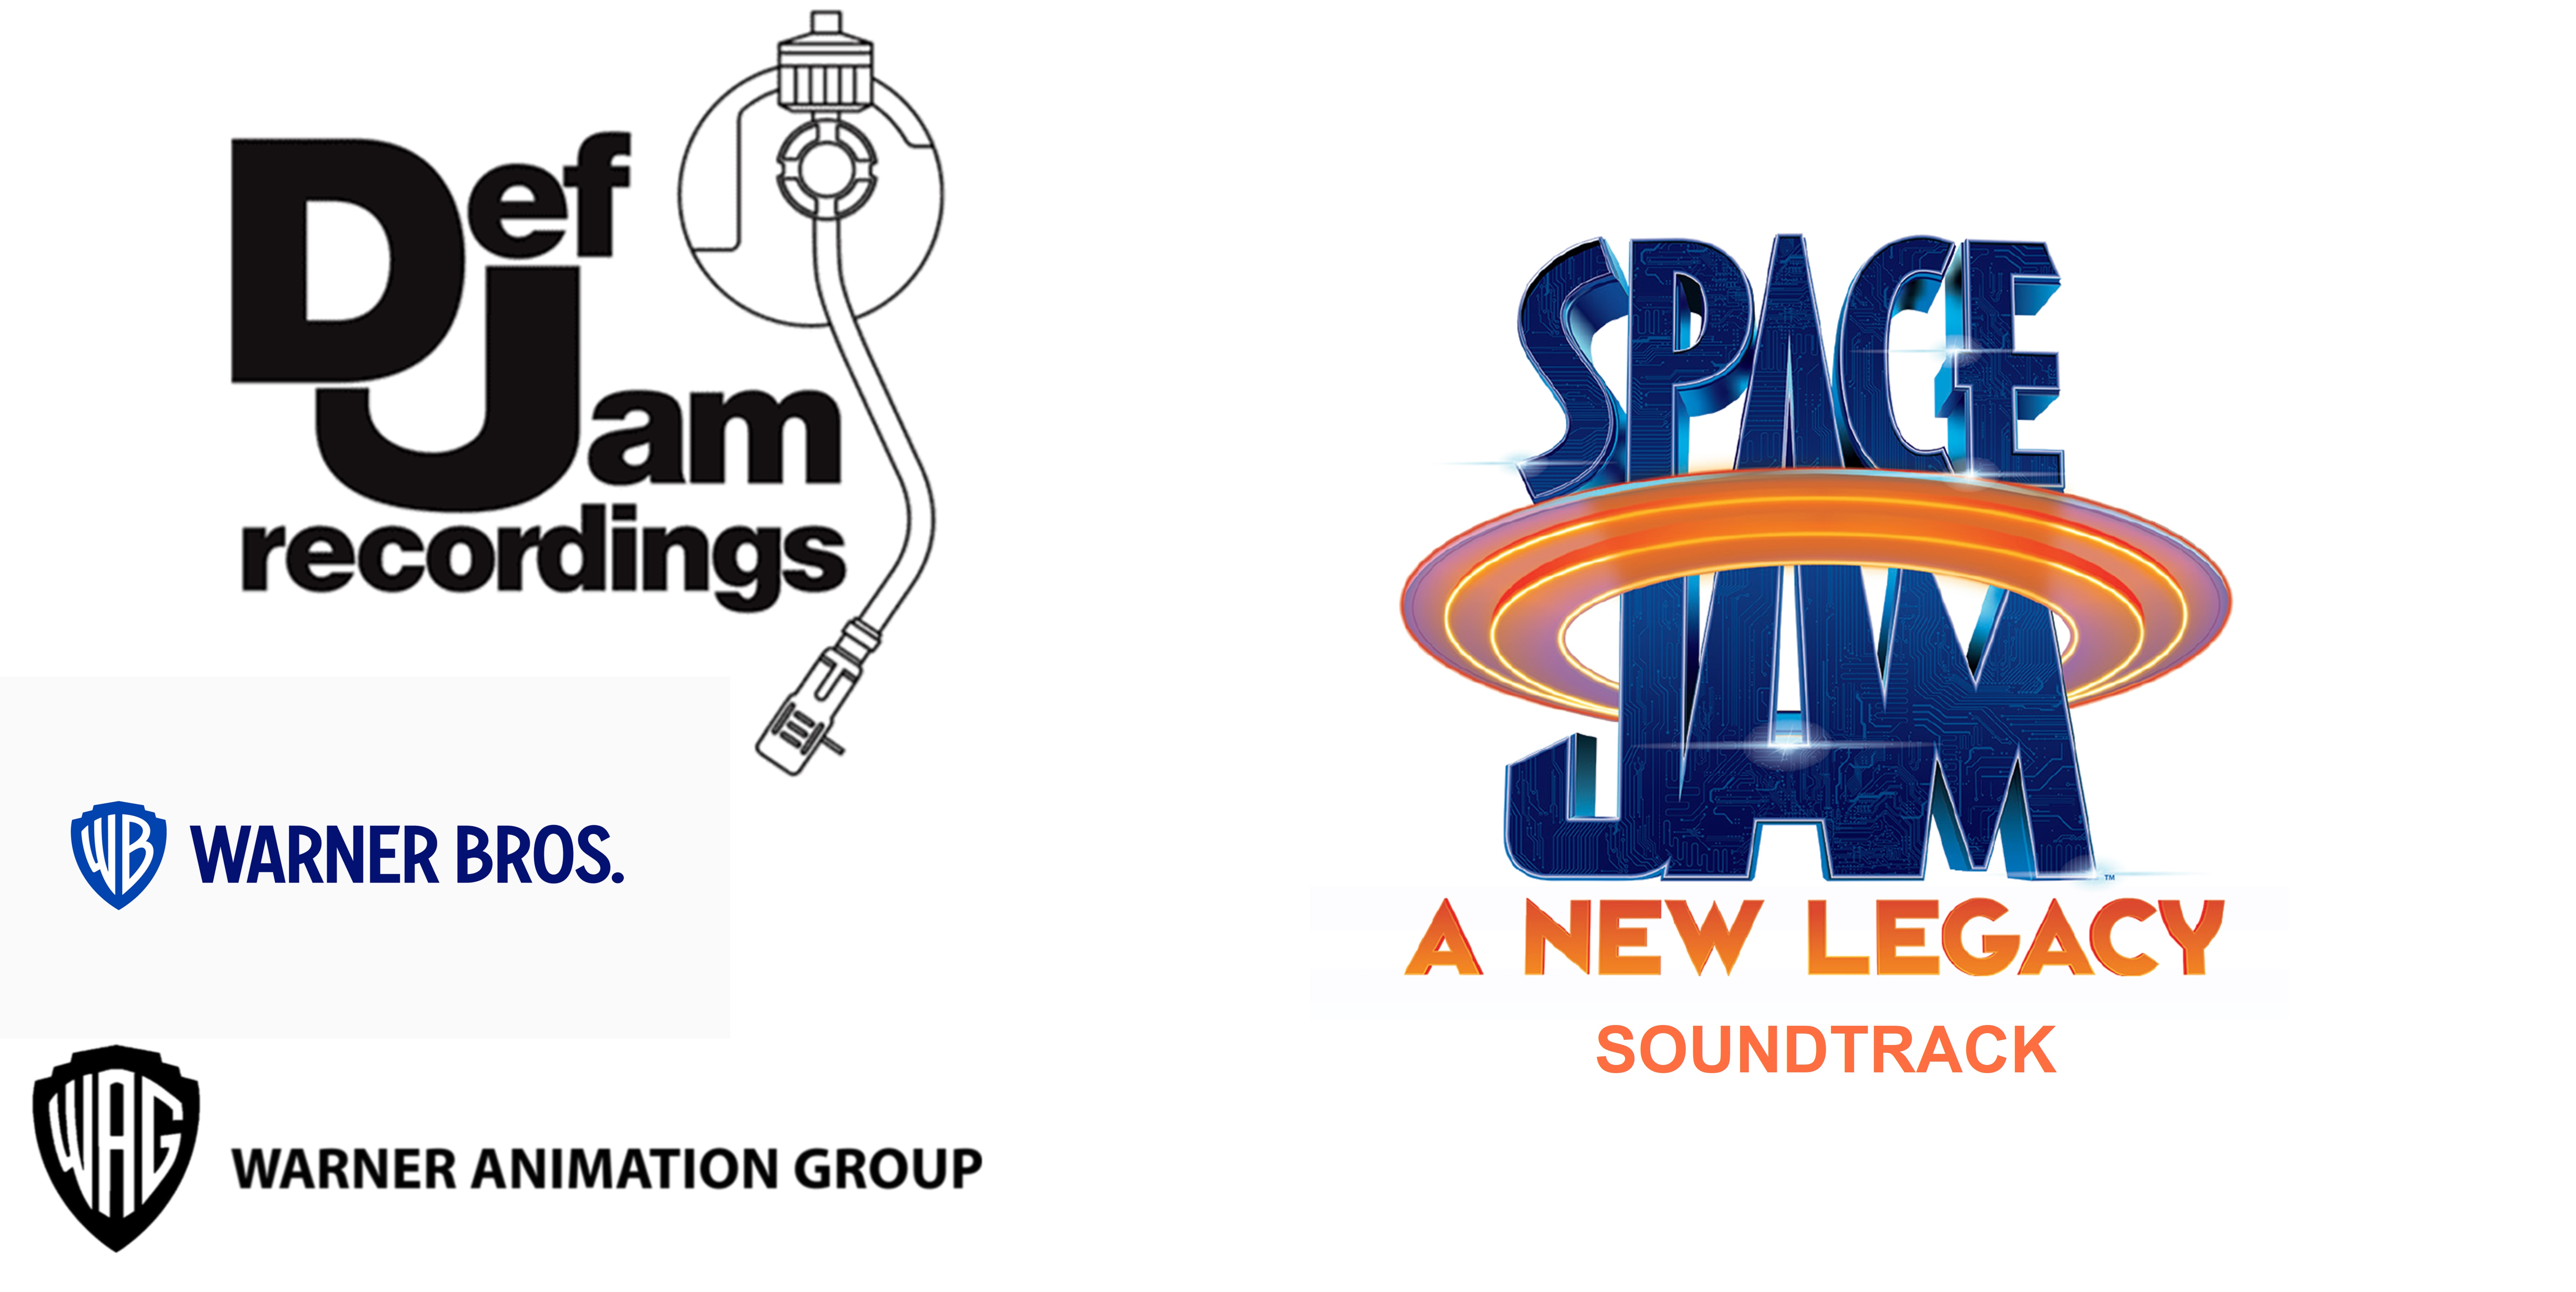 Def Jam, Warner Bros., and Warner Animation Group to Space Jam: A New Legacy Soundtrack